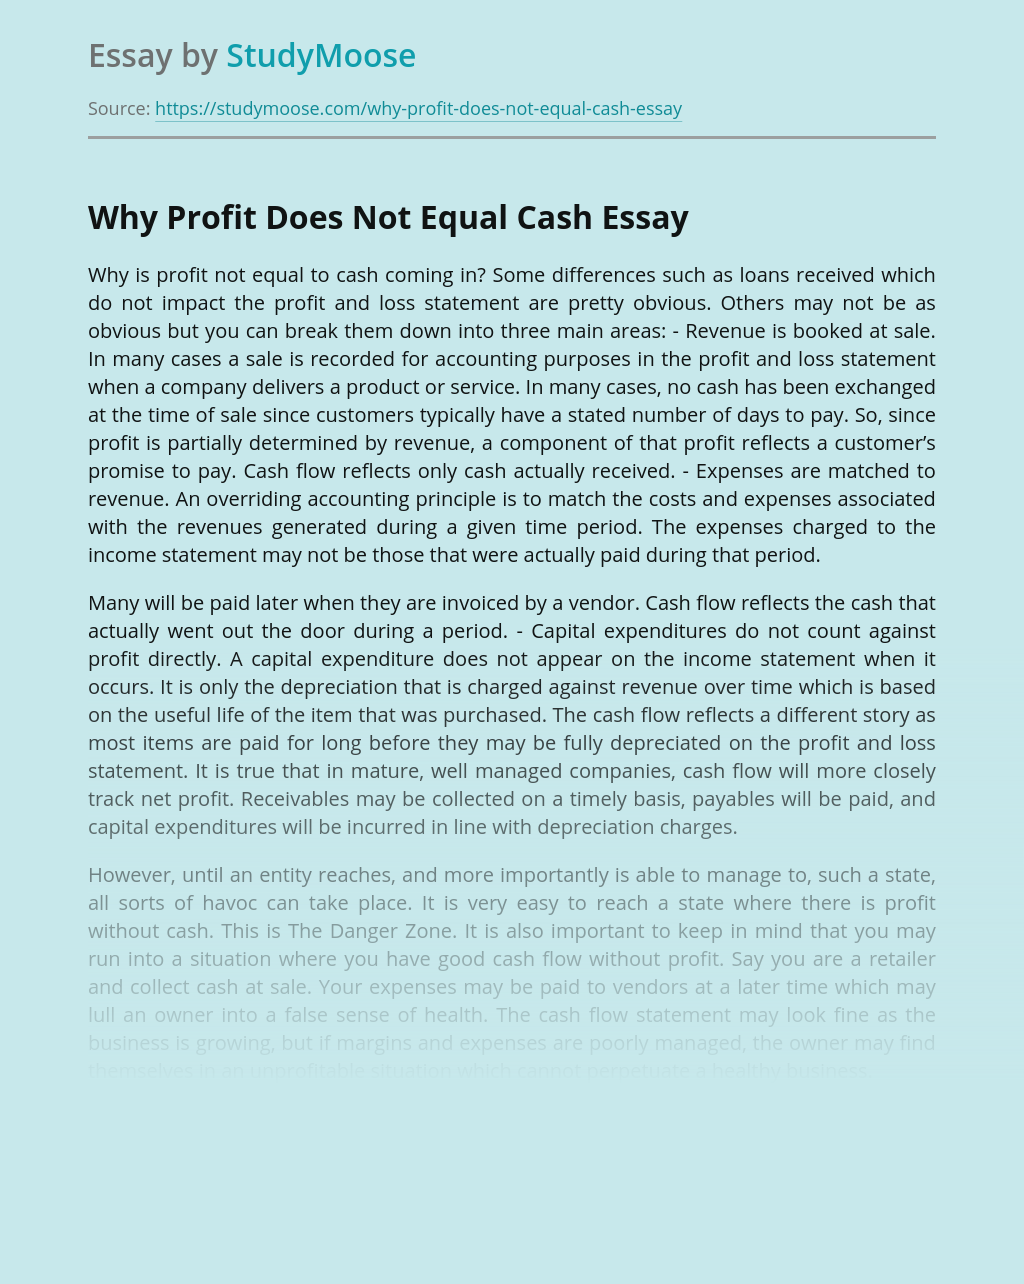 Why Company's Profit Does Not Equal Cash